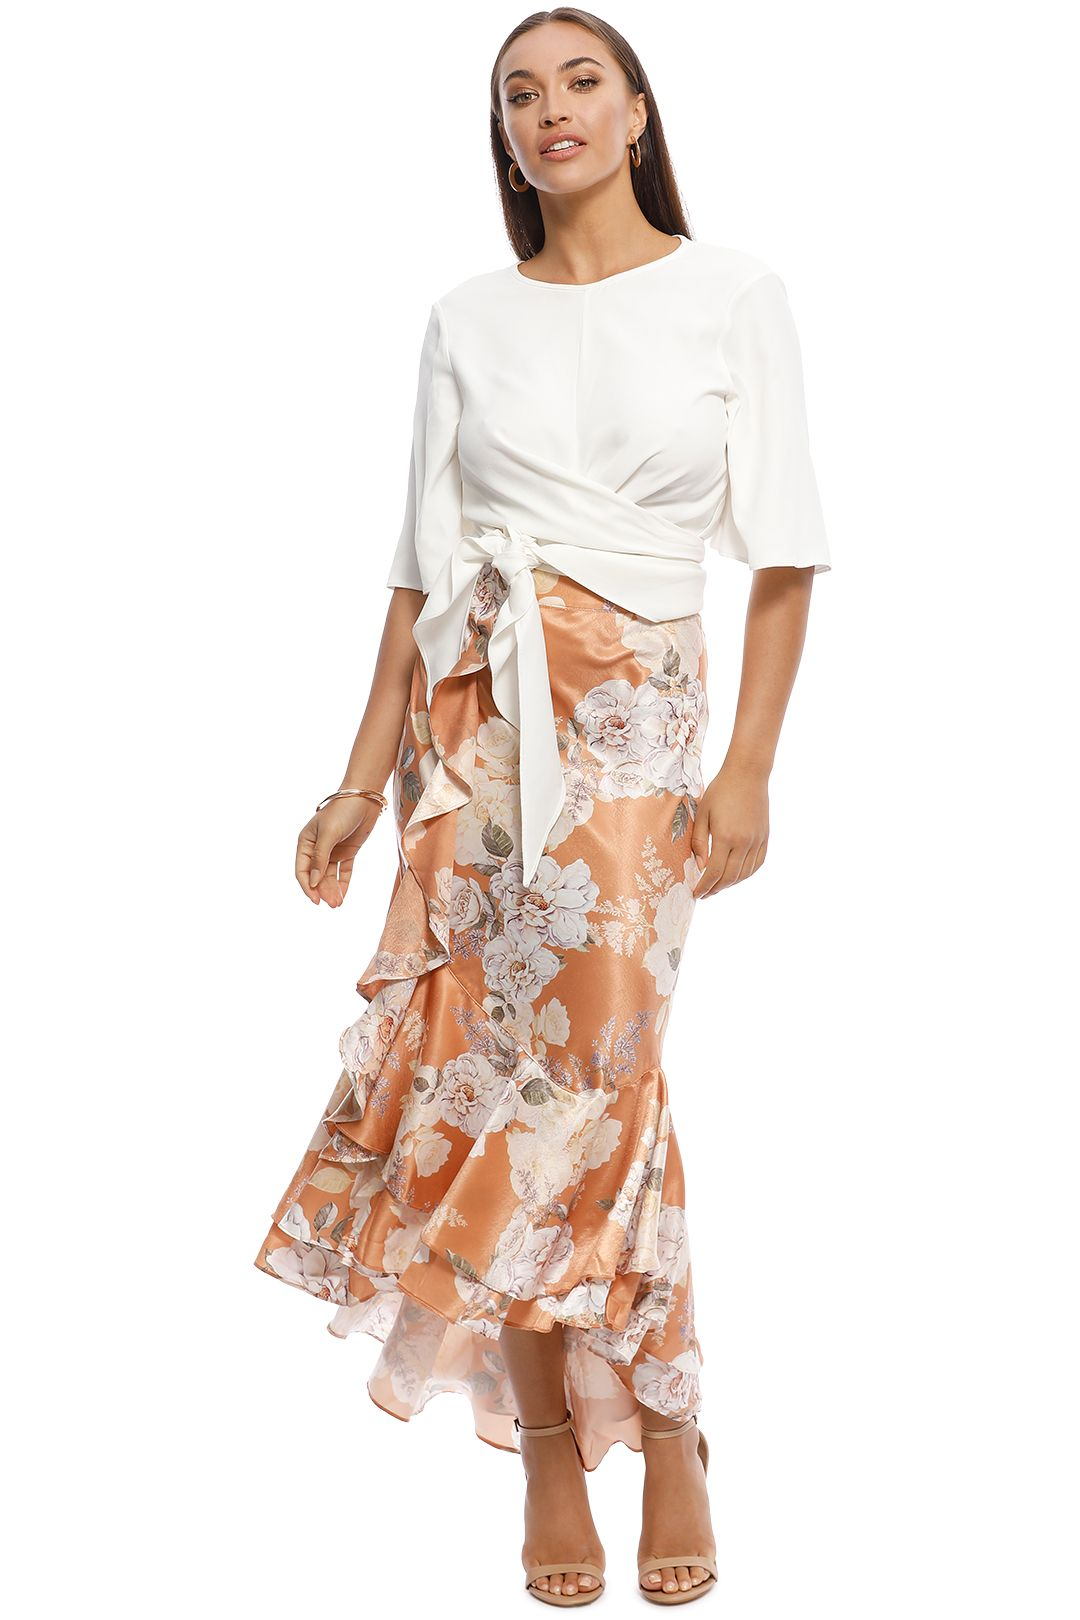 We Are Kindred - Frenchie Bias Skirt - Peach Blossom - Front